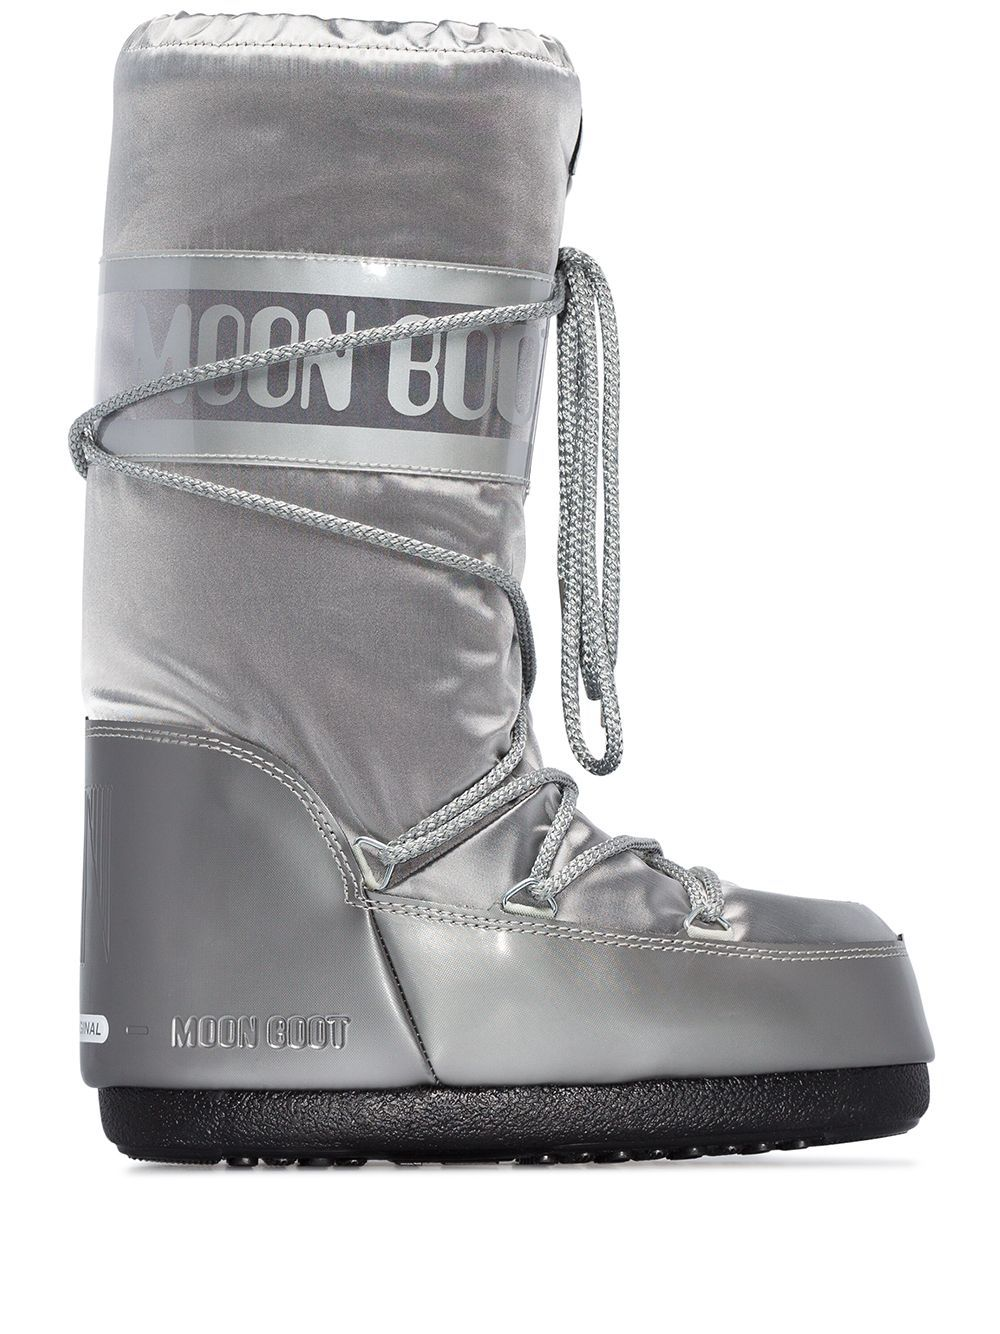 Moon Boot Glance Metallic Snow Boots In Silver Modesens Moon Boots Boots Snow Boots